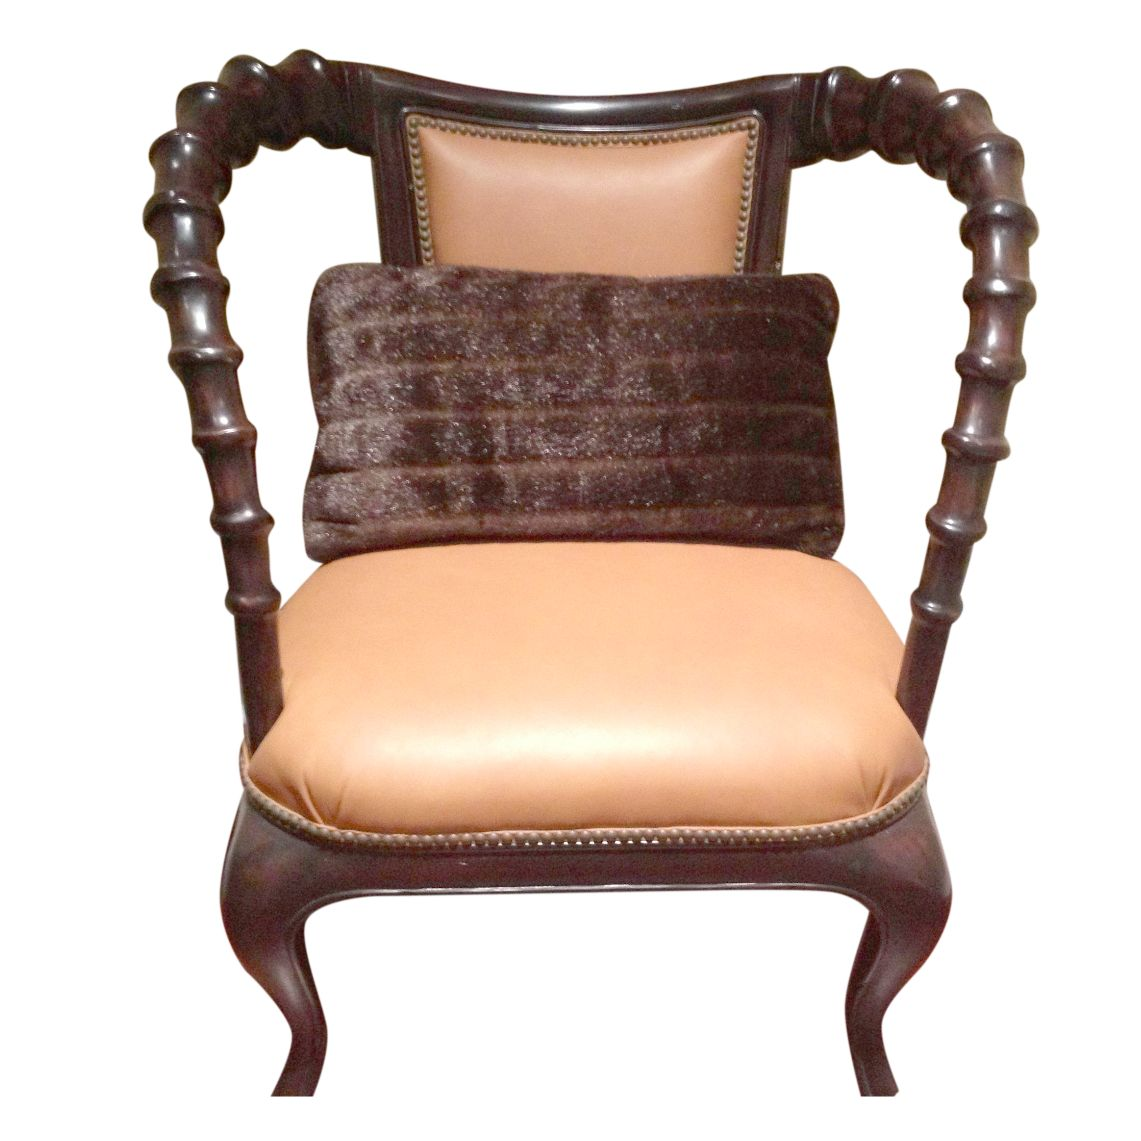 East African Chair with Brown Leather Chairish : east african chair with brown leather 9461aspectfitampwidth640ampheight640 from www.chairish.com size 640 x 640 jpeg 40kB